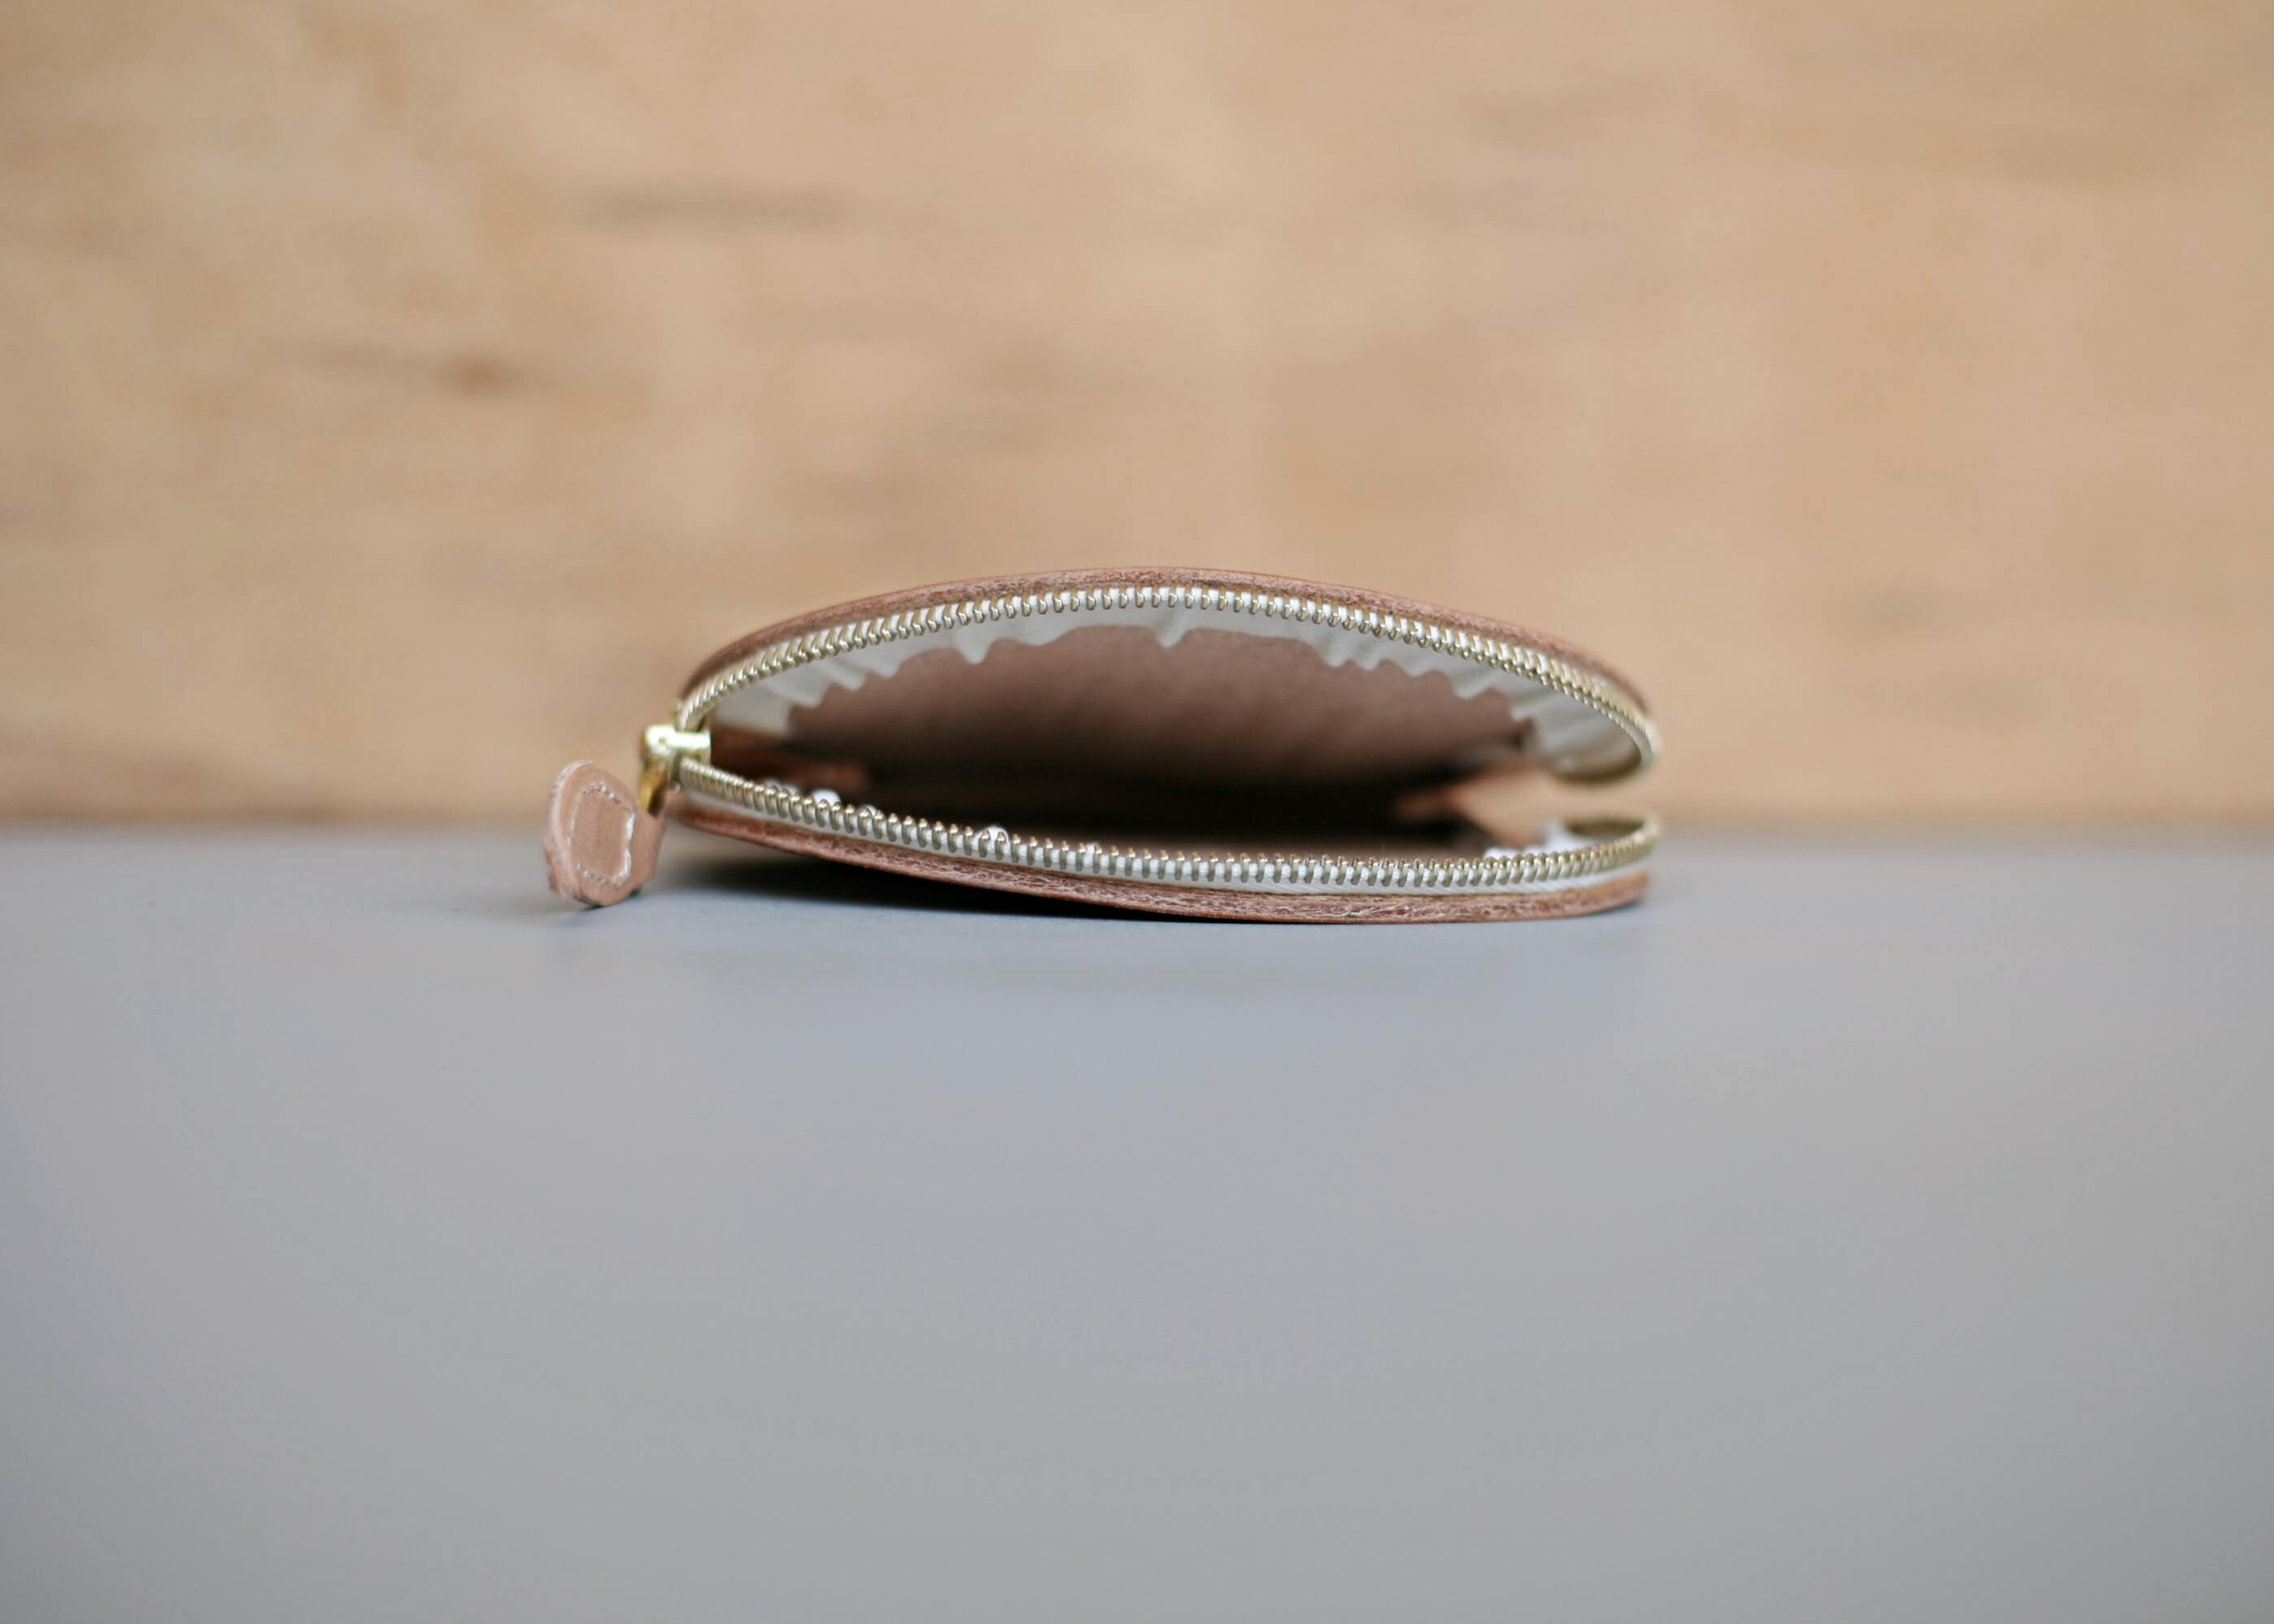 20/80 tochigi leather apple coin purse 横からの写真